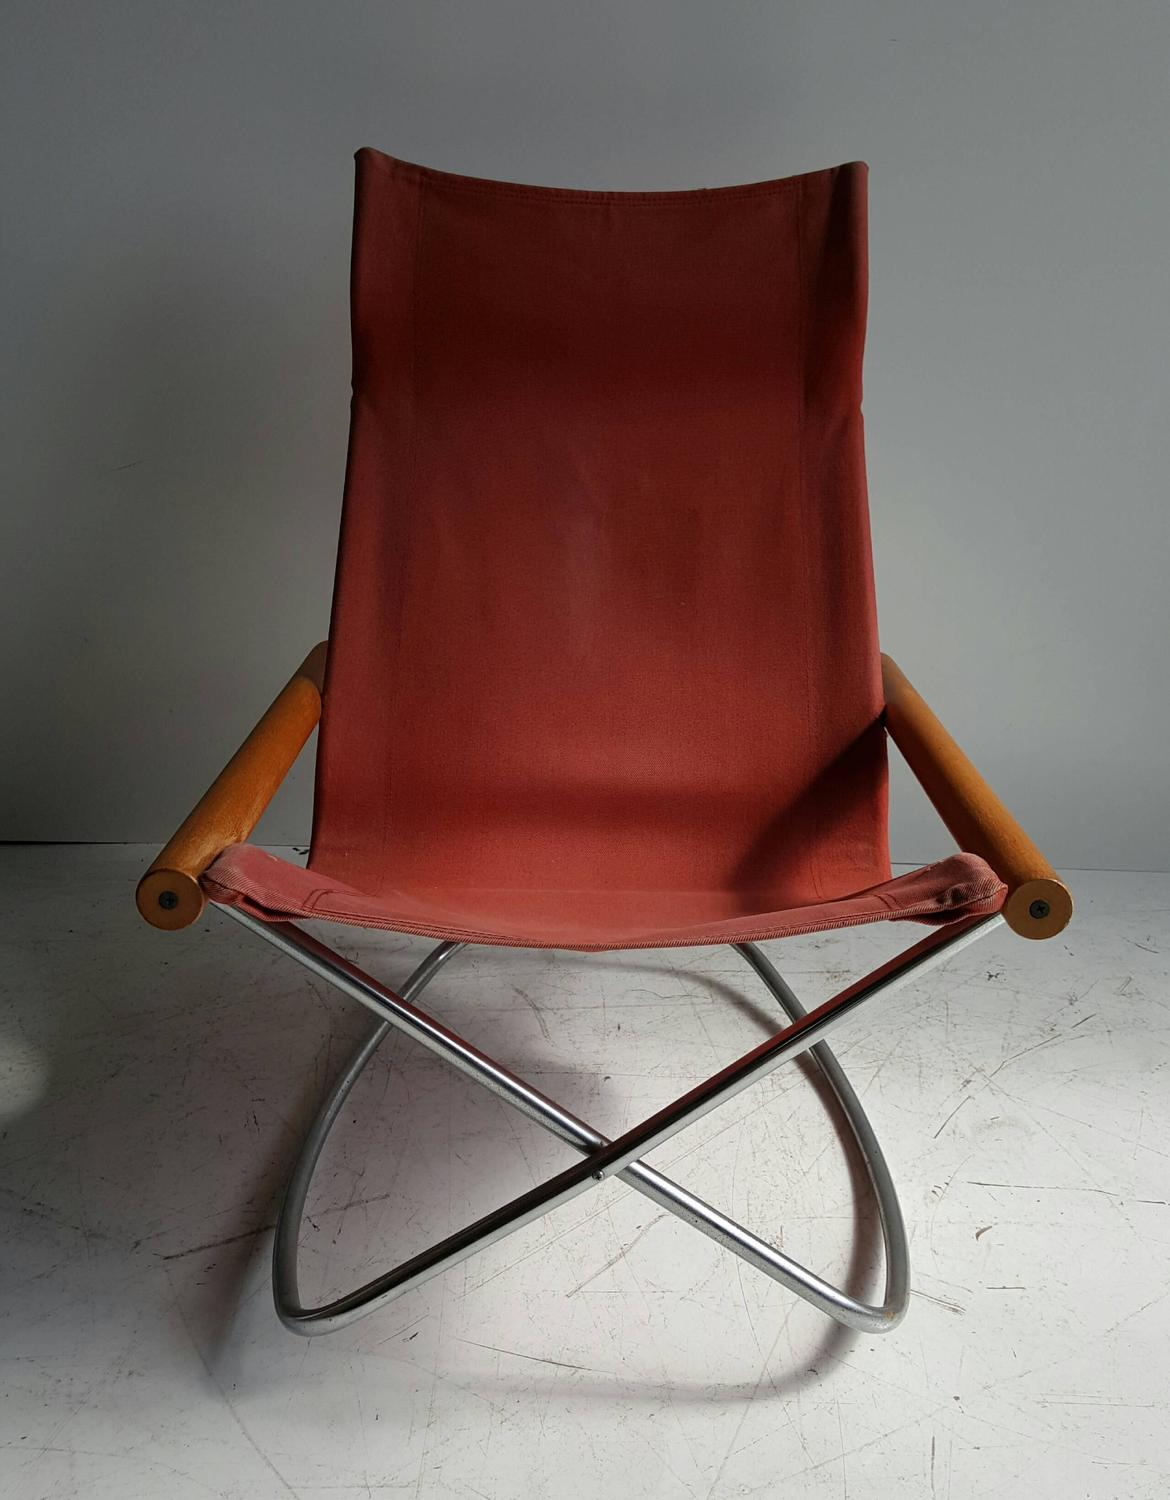 Folding Rocking Chairs Takeshi Nii Quotny Quot Folding Rocking Chair For Sale At 1stdibs